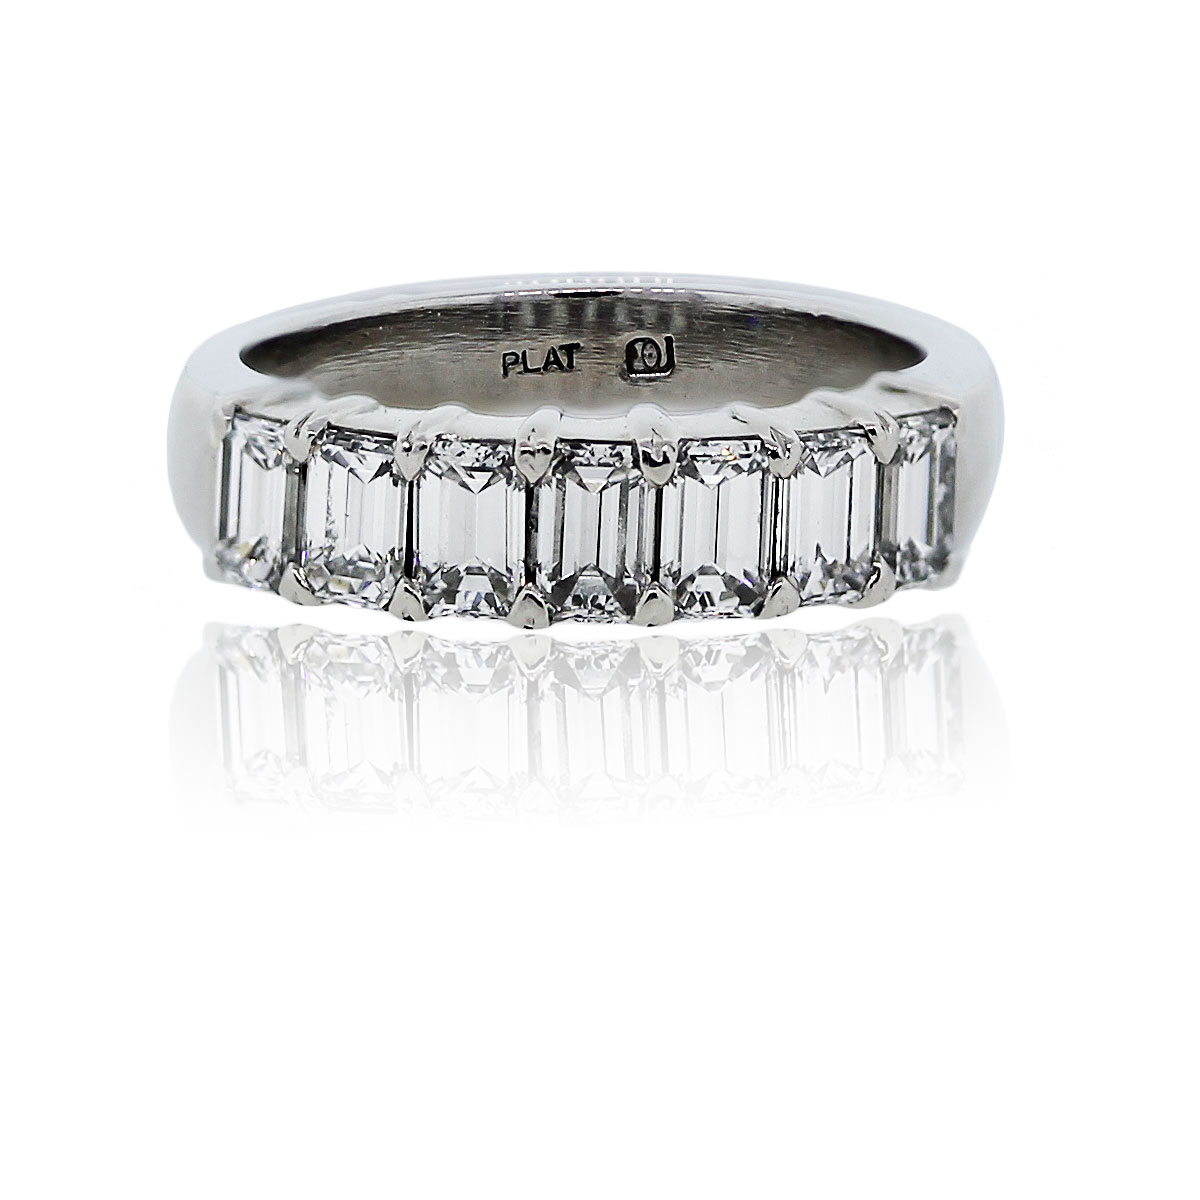 You are viewing this Platinum Emerald Shape Diamond Wedding Band Ring!